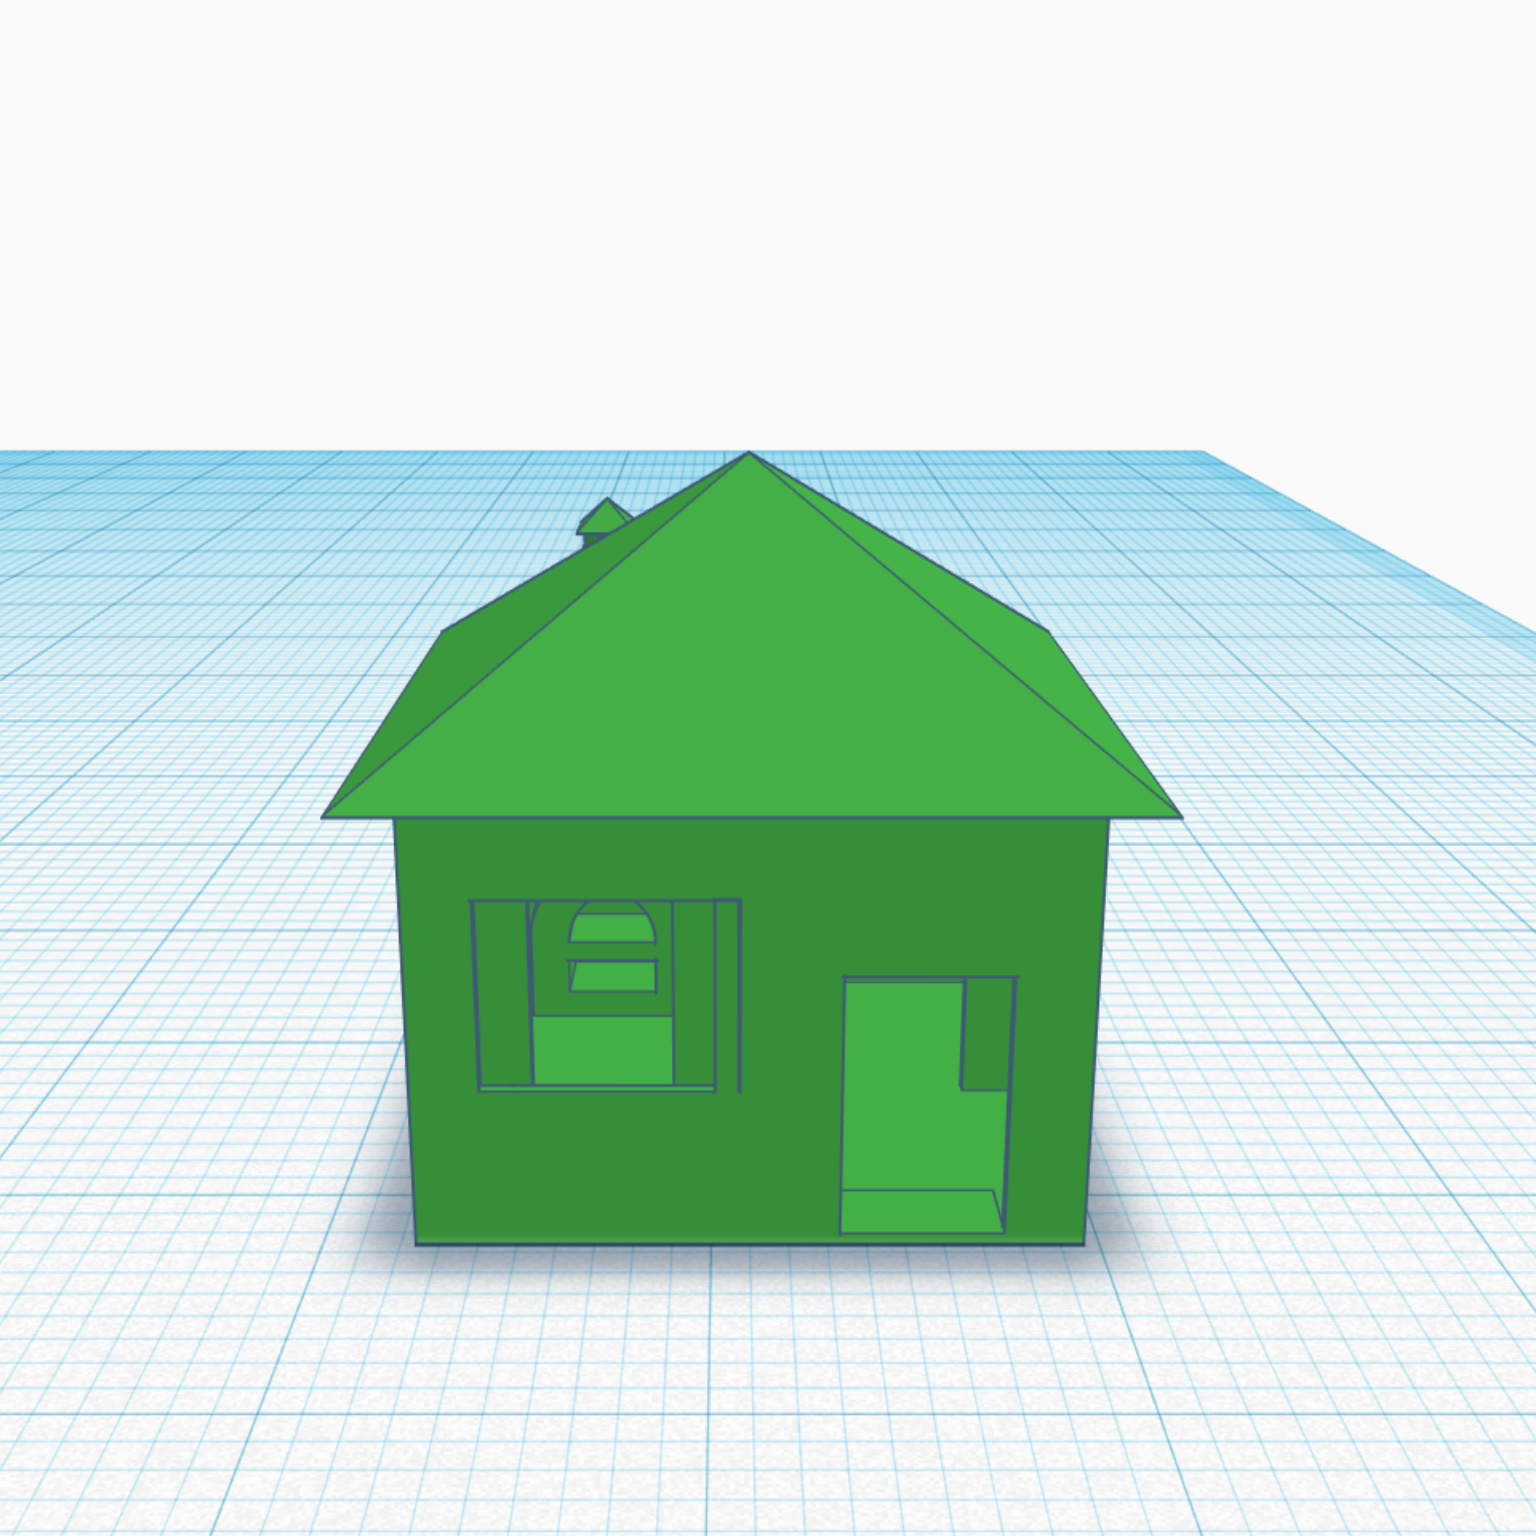 Screenshot (50).png Download free STL file House • 3D printer object, Lisu_001